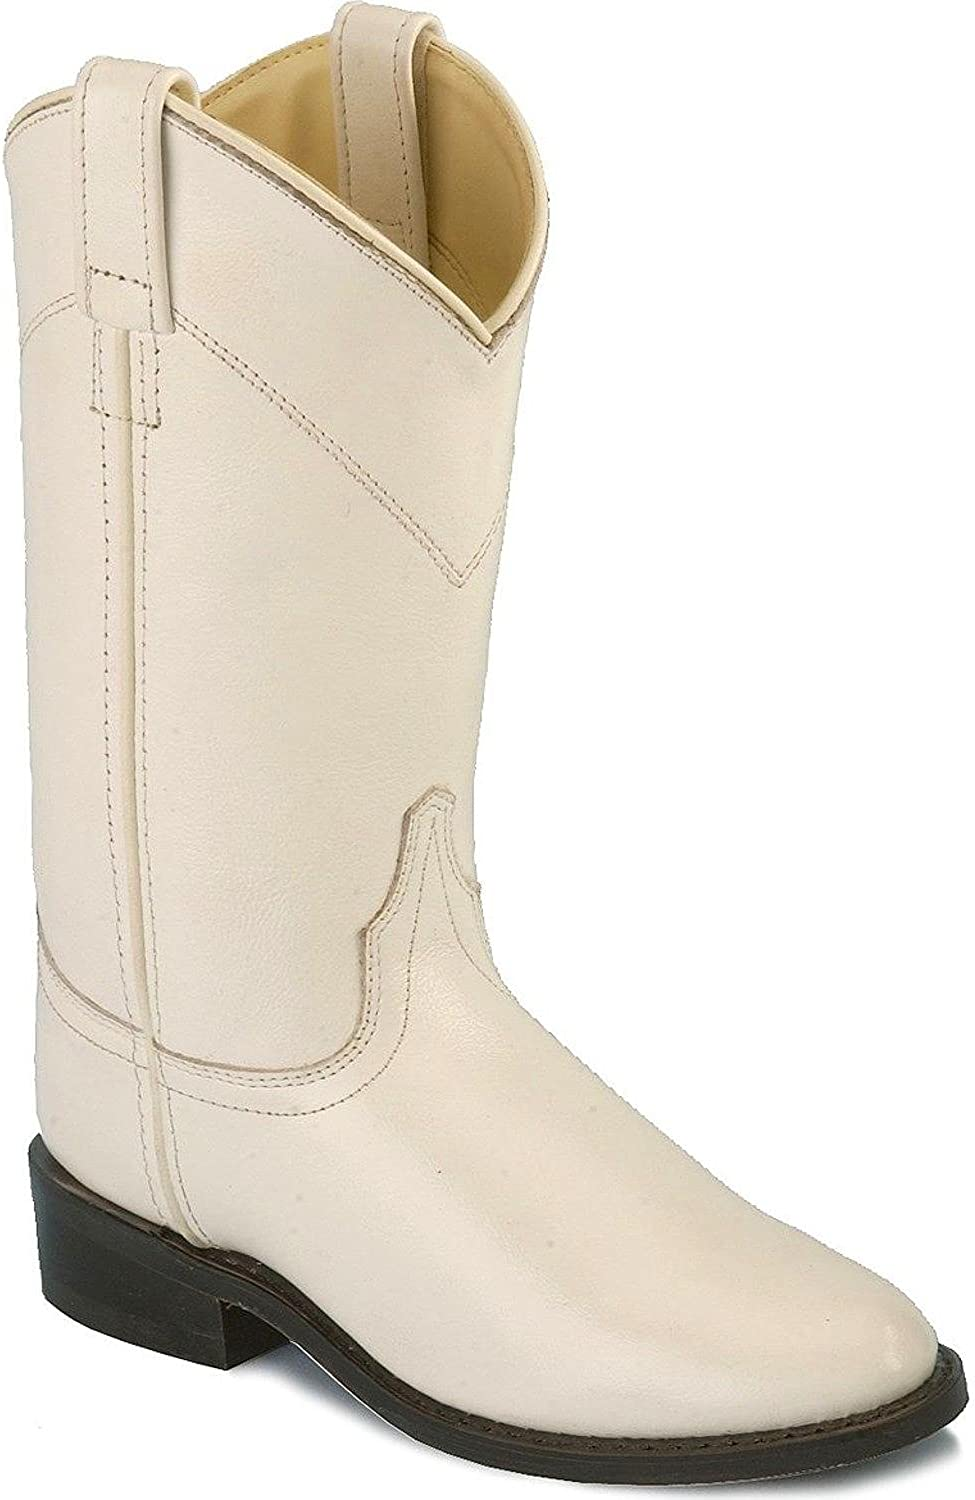 Roper Boots Old West Ladies Leather Cowgirl White